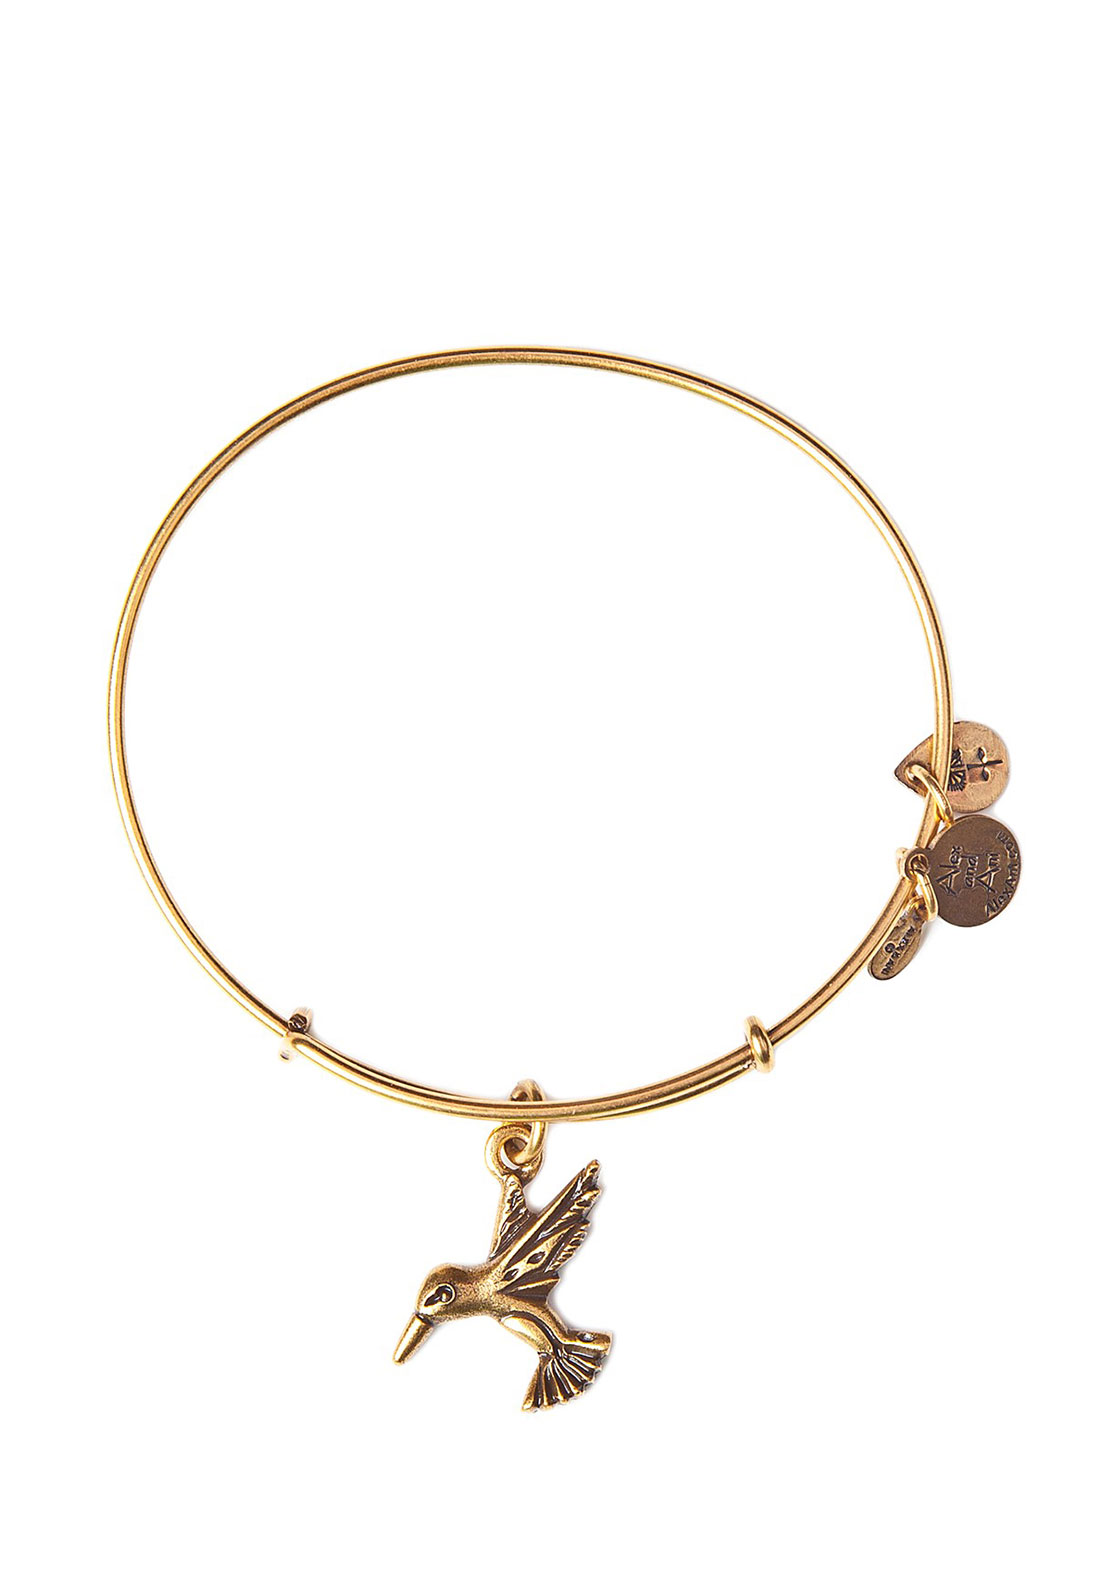 Alex and Ani Humming Bird Charm Bracelet, Gold